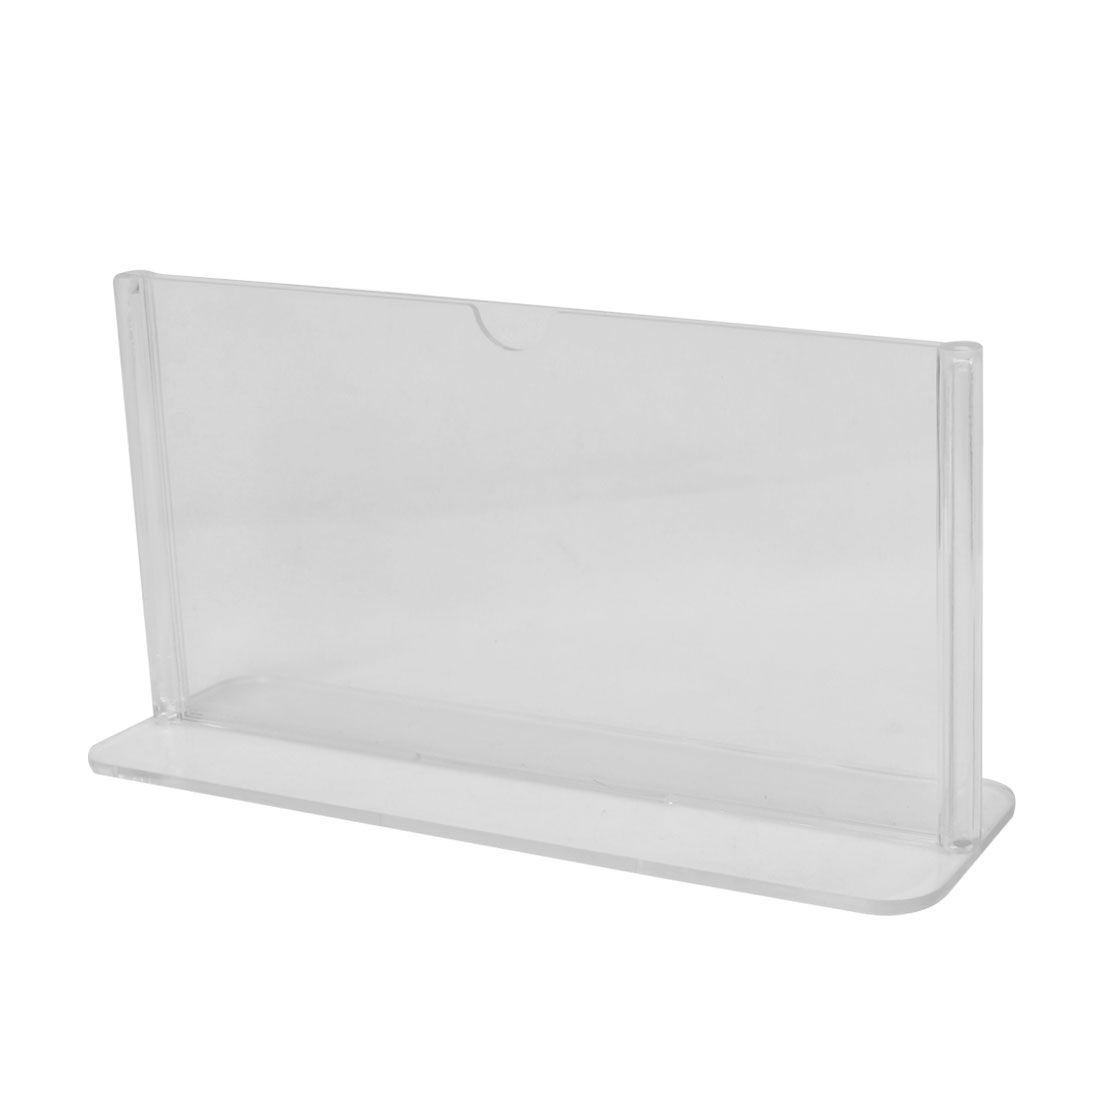 Clear Plastic 17.8 x 10cm Standard Price Menu Display Holder